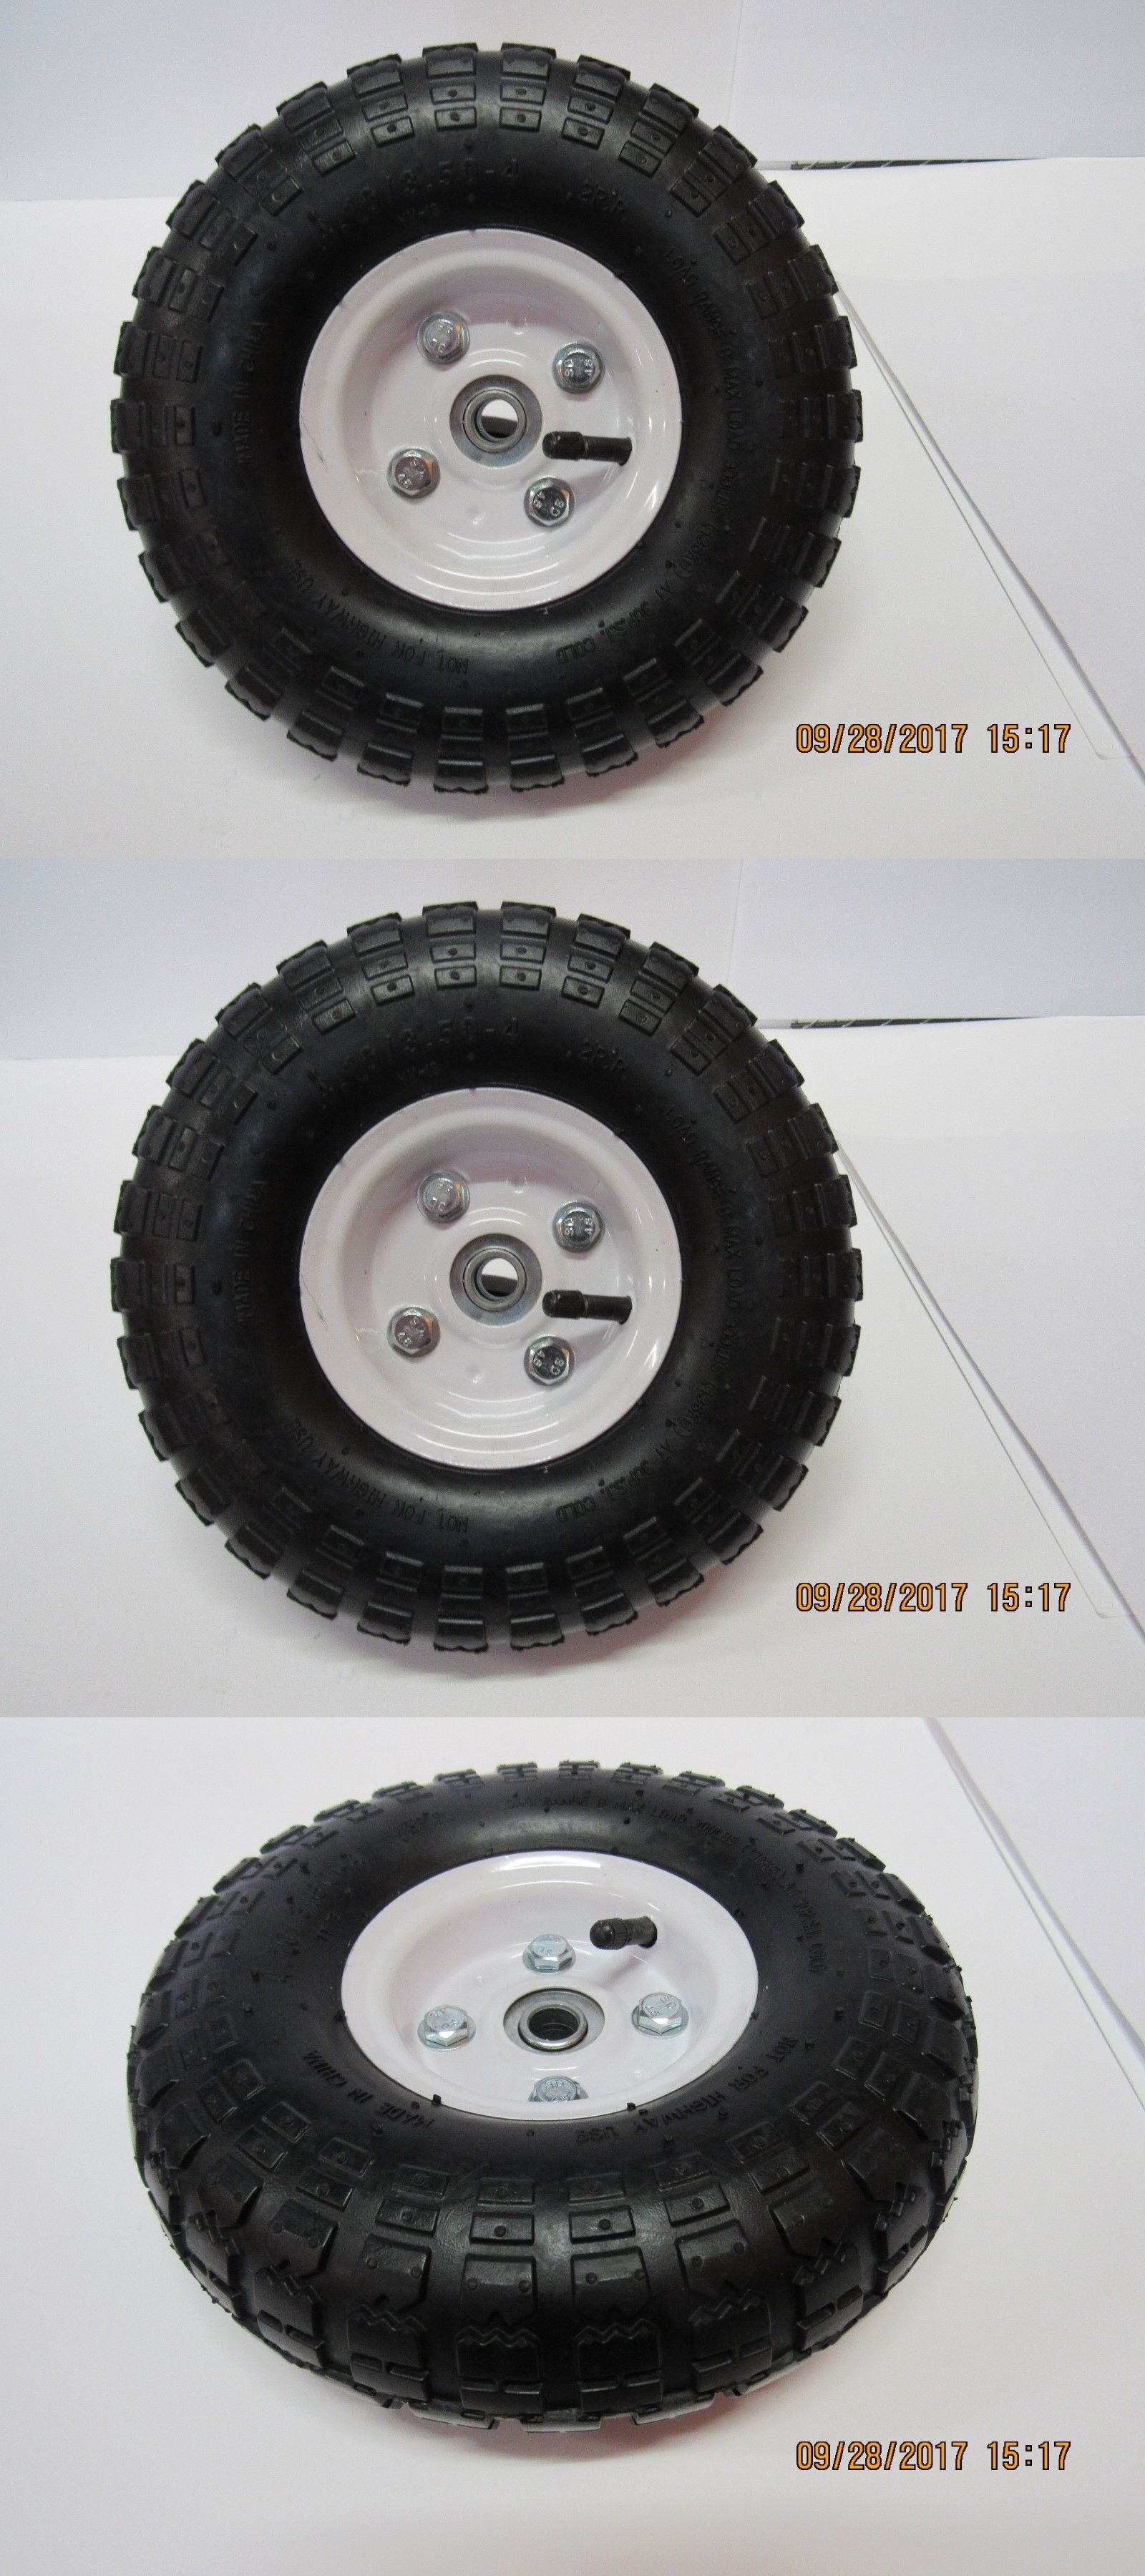 Wheelbarrows Carts And Wagons 75671 Utility Wheels Tires 4 10 3 50 4 With 5 8 Bearings 10 Pneumatic Tire Buy It Now Wheels Tires Wheel Utility Trailer